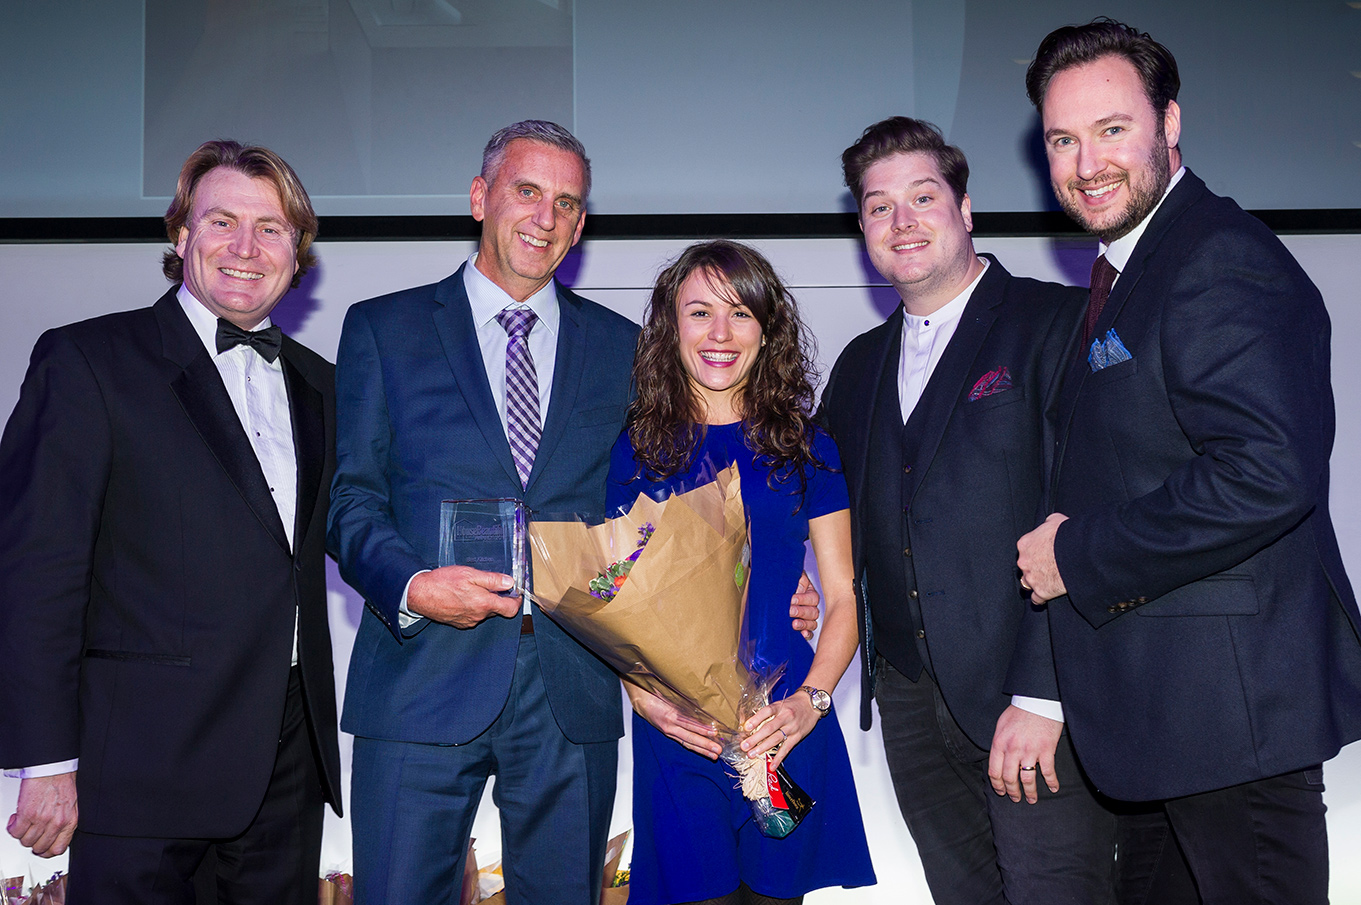 The CRL Stone team posing after winning the House Beautiful Award